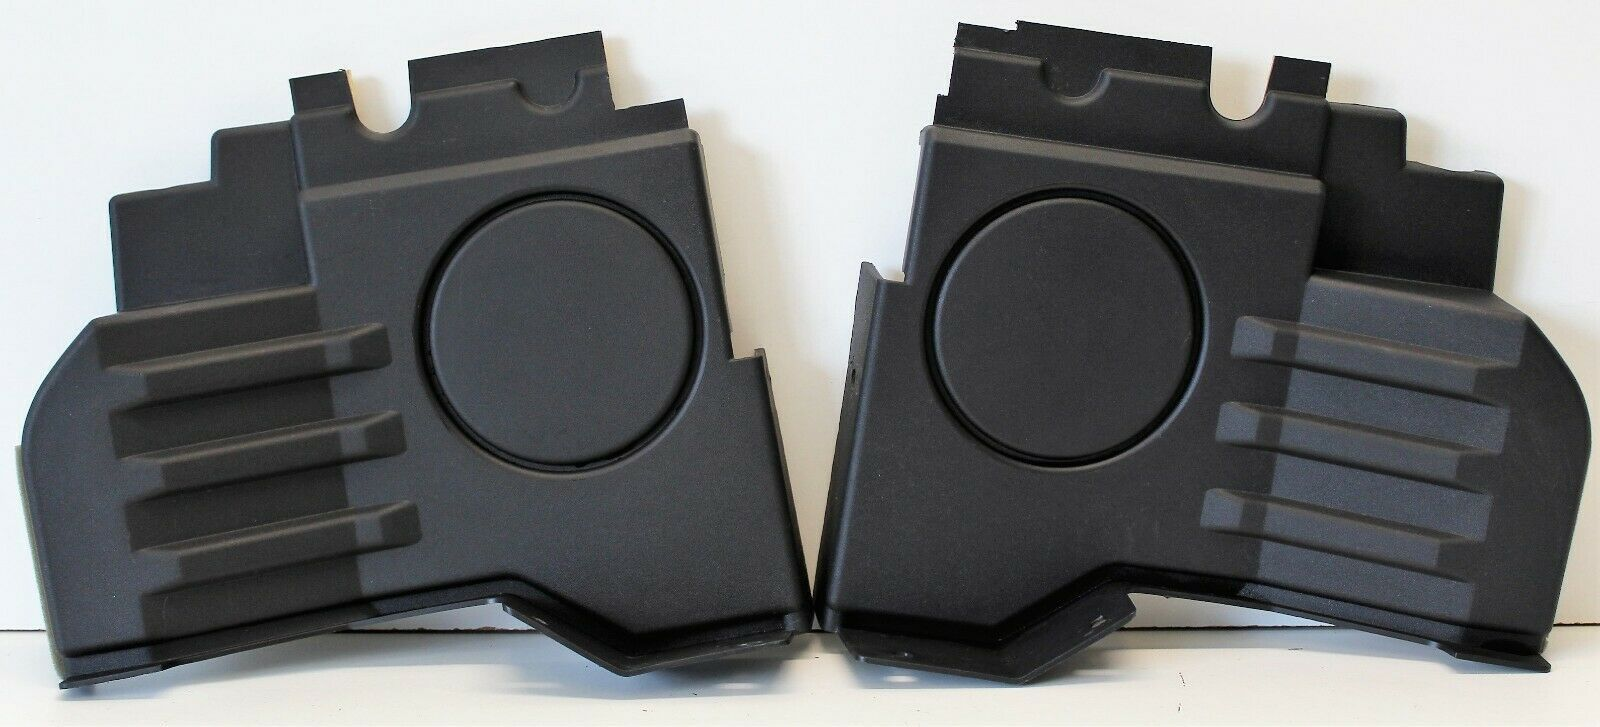 Land Rover Defender Stepped Tub Solid End Panel's featured image